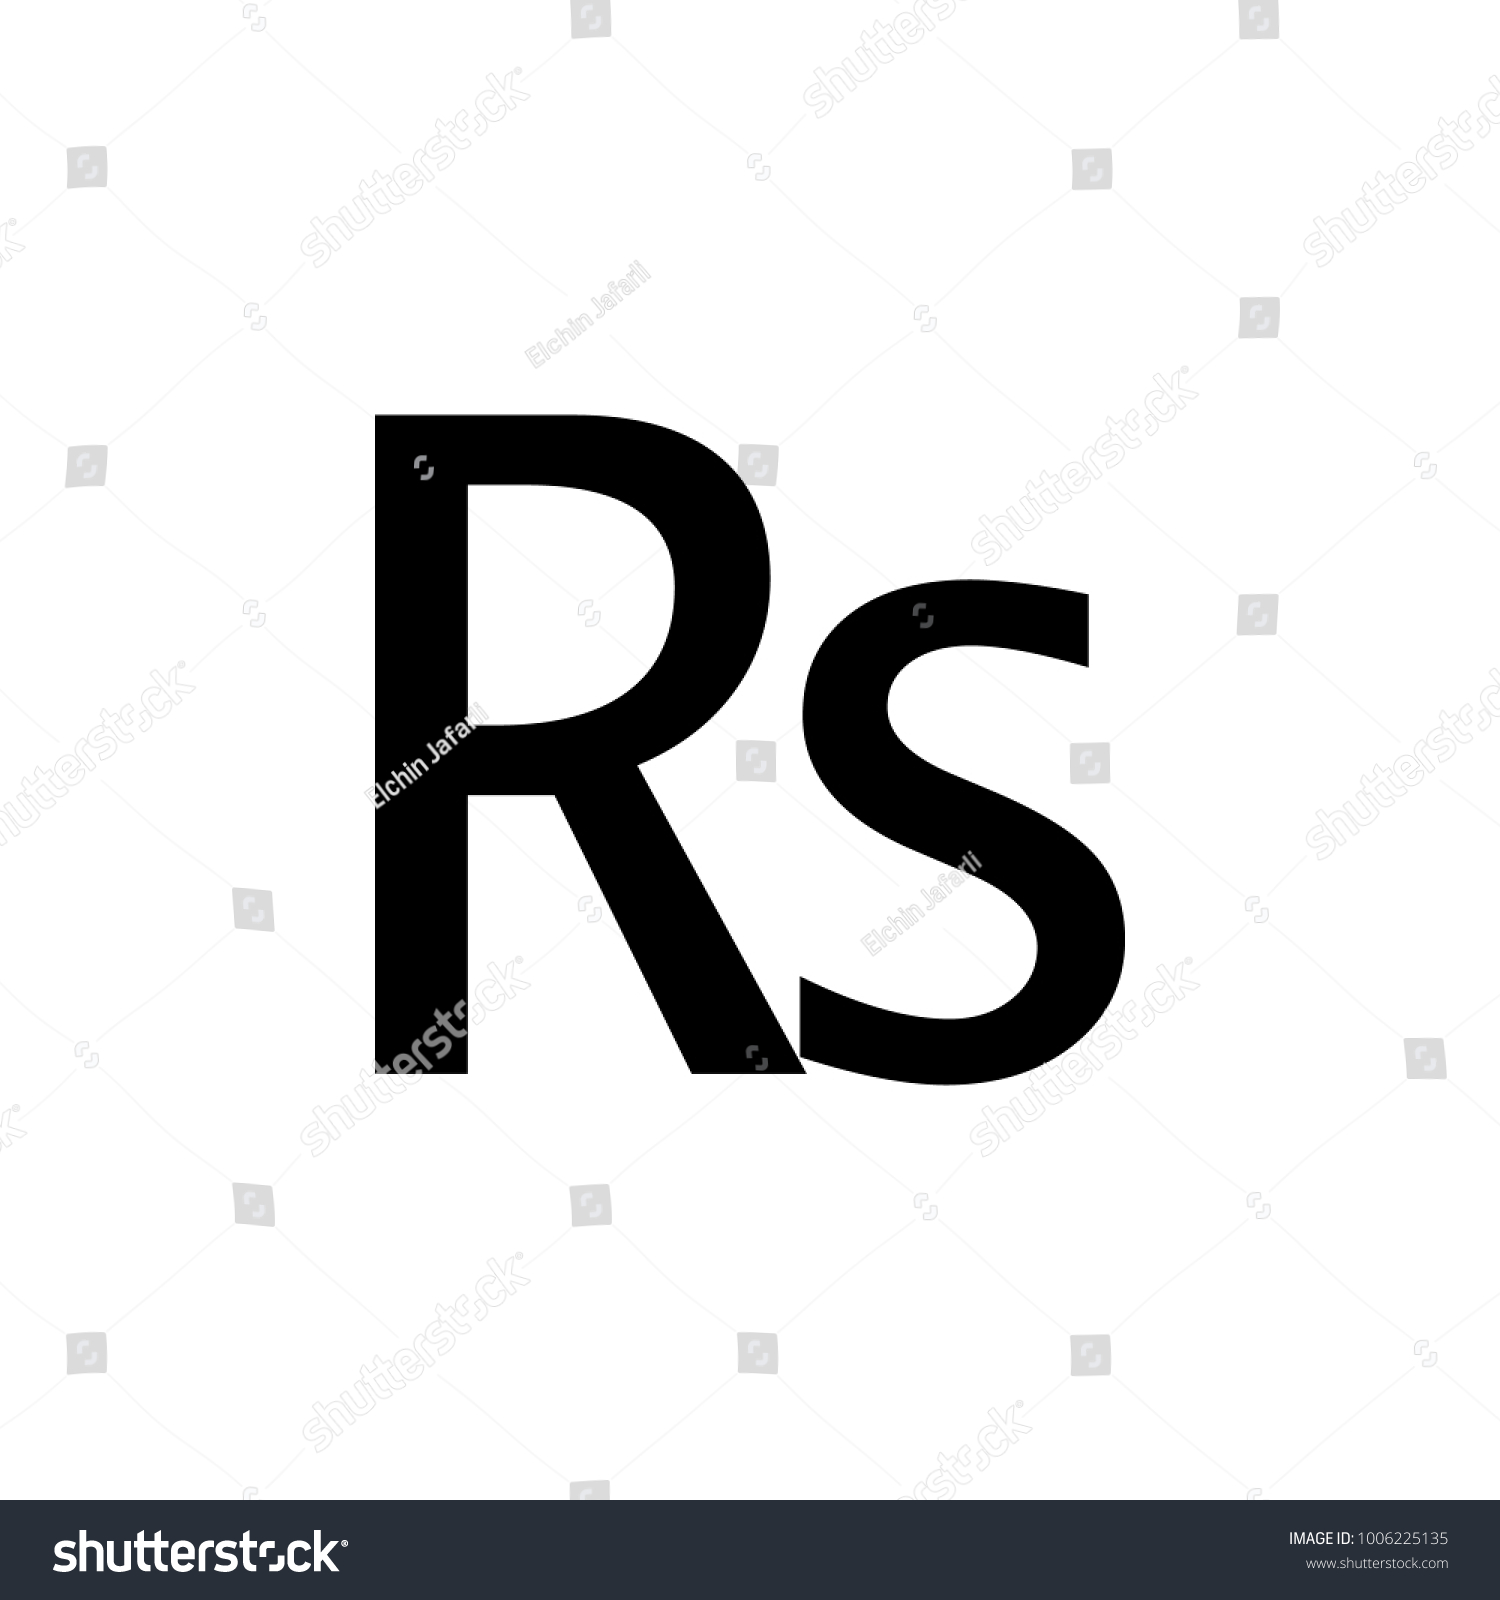 Indian rupee sign icon element money stock vector 1006225135 indian rupee sign icon element of money symbol icon premium quality graphic design icon biocorpaavc Choice Image